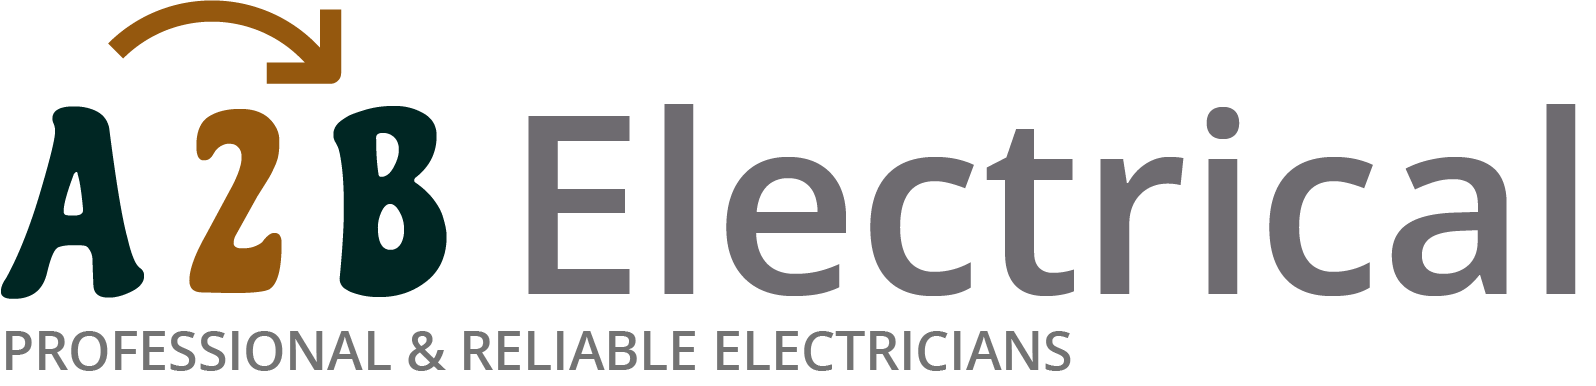 If you have electrical wiring problems in Northolt, we can provide an electrician to have a look for you.